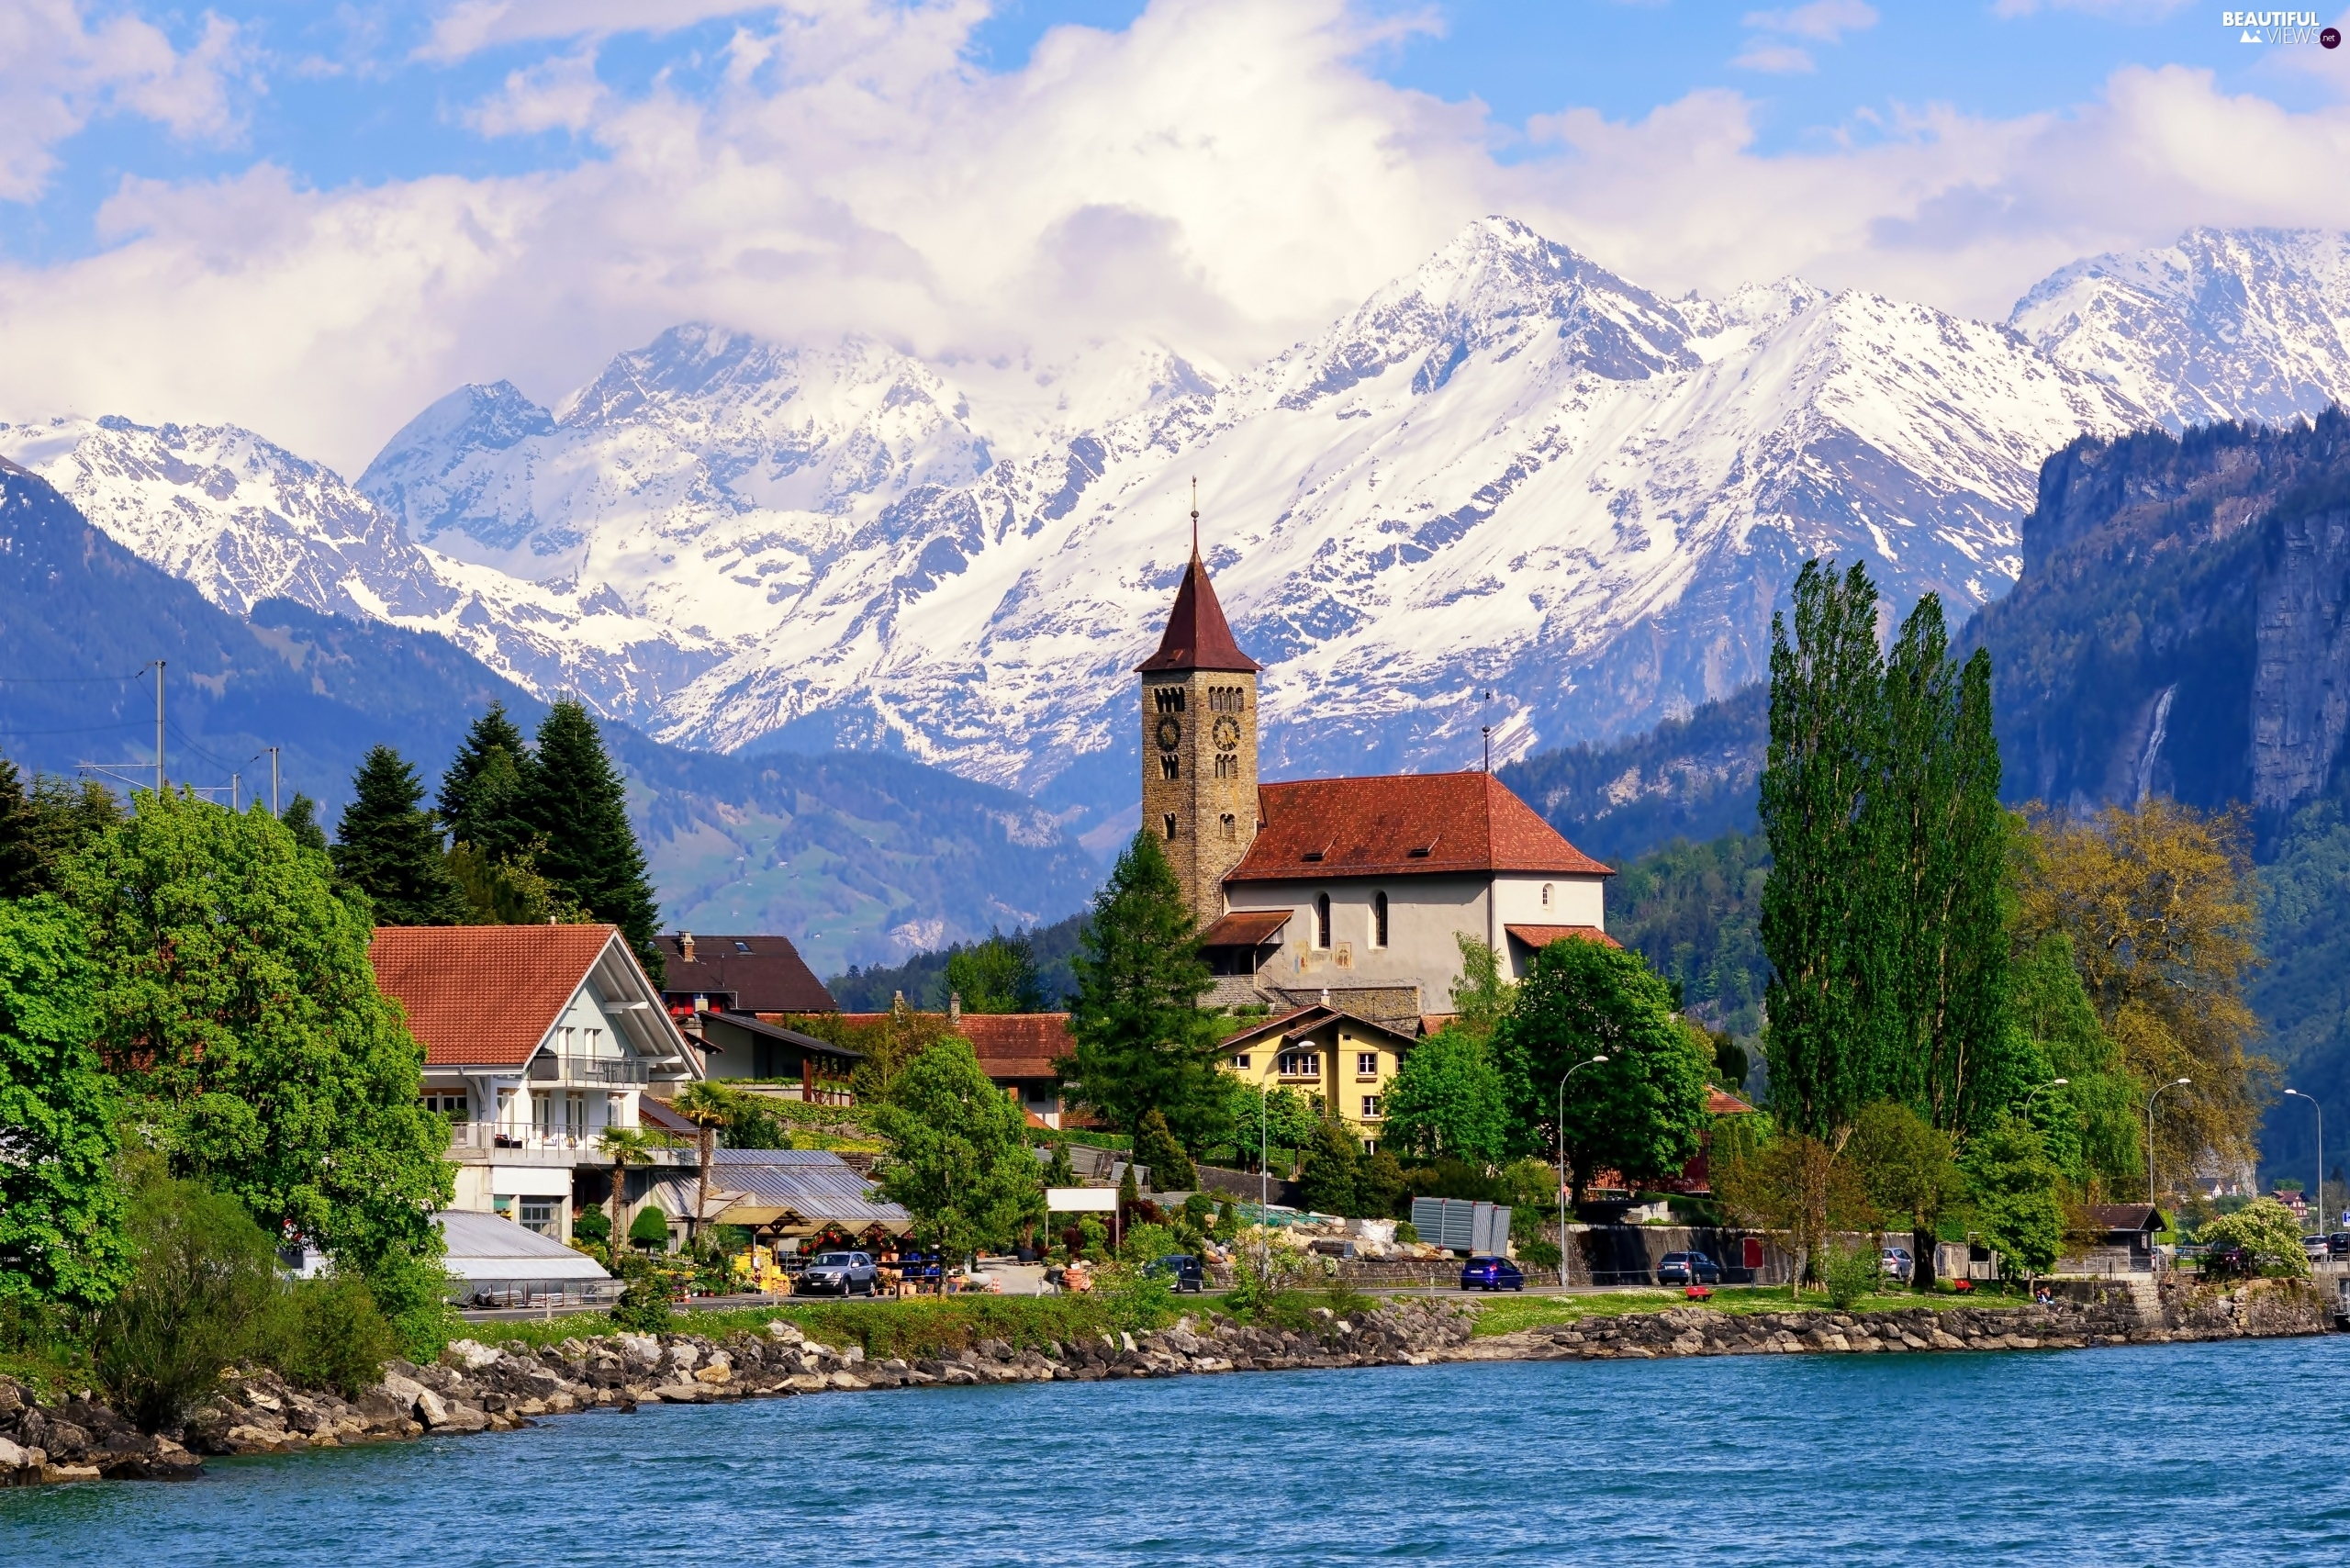 Lake Village Alps Switzerland Mountains Houses